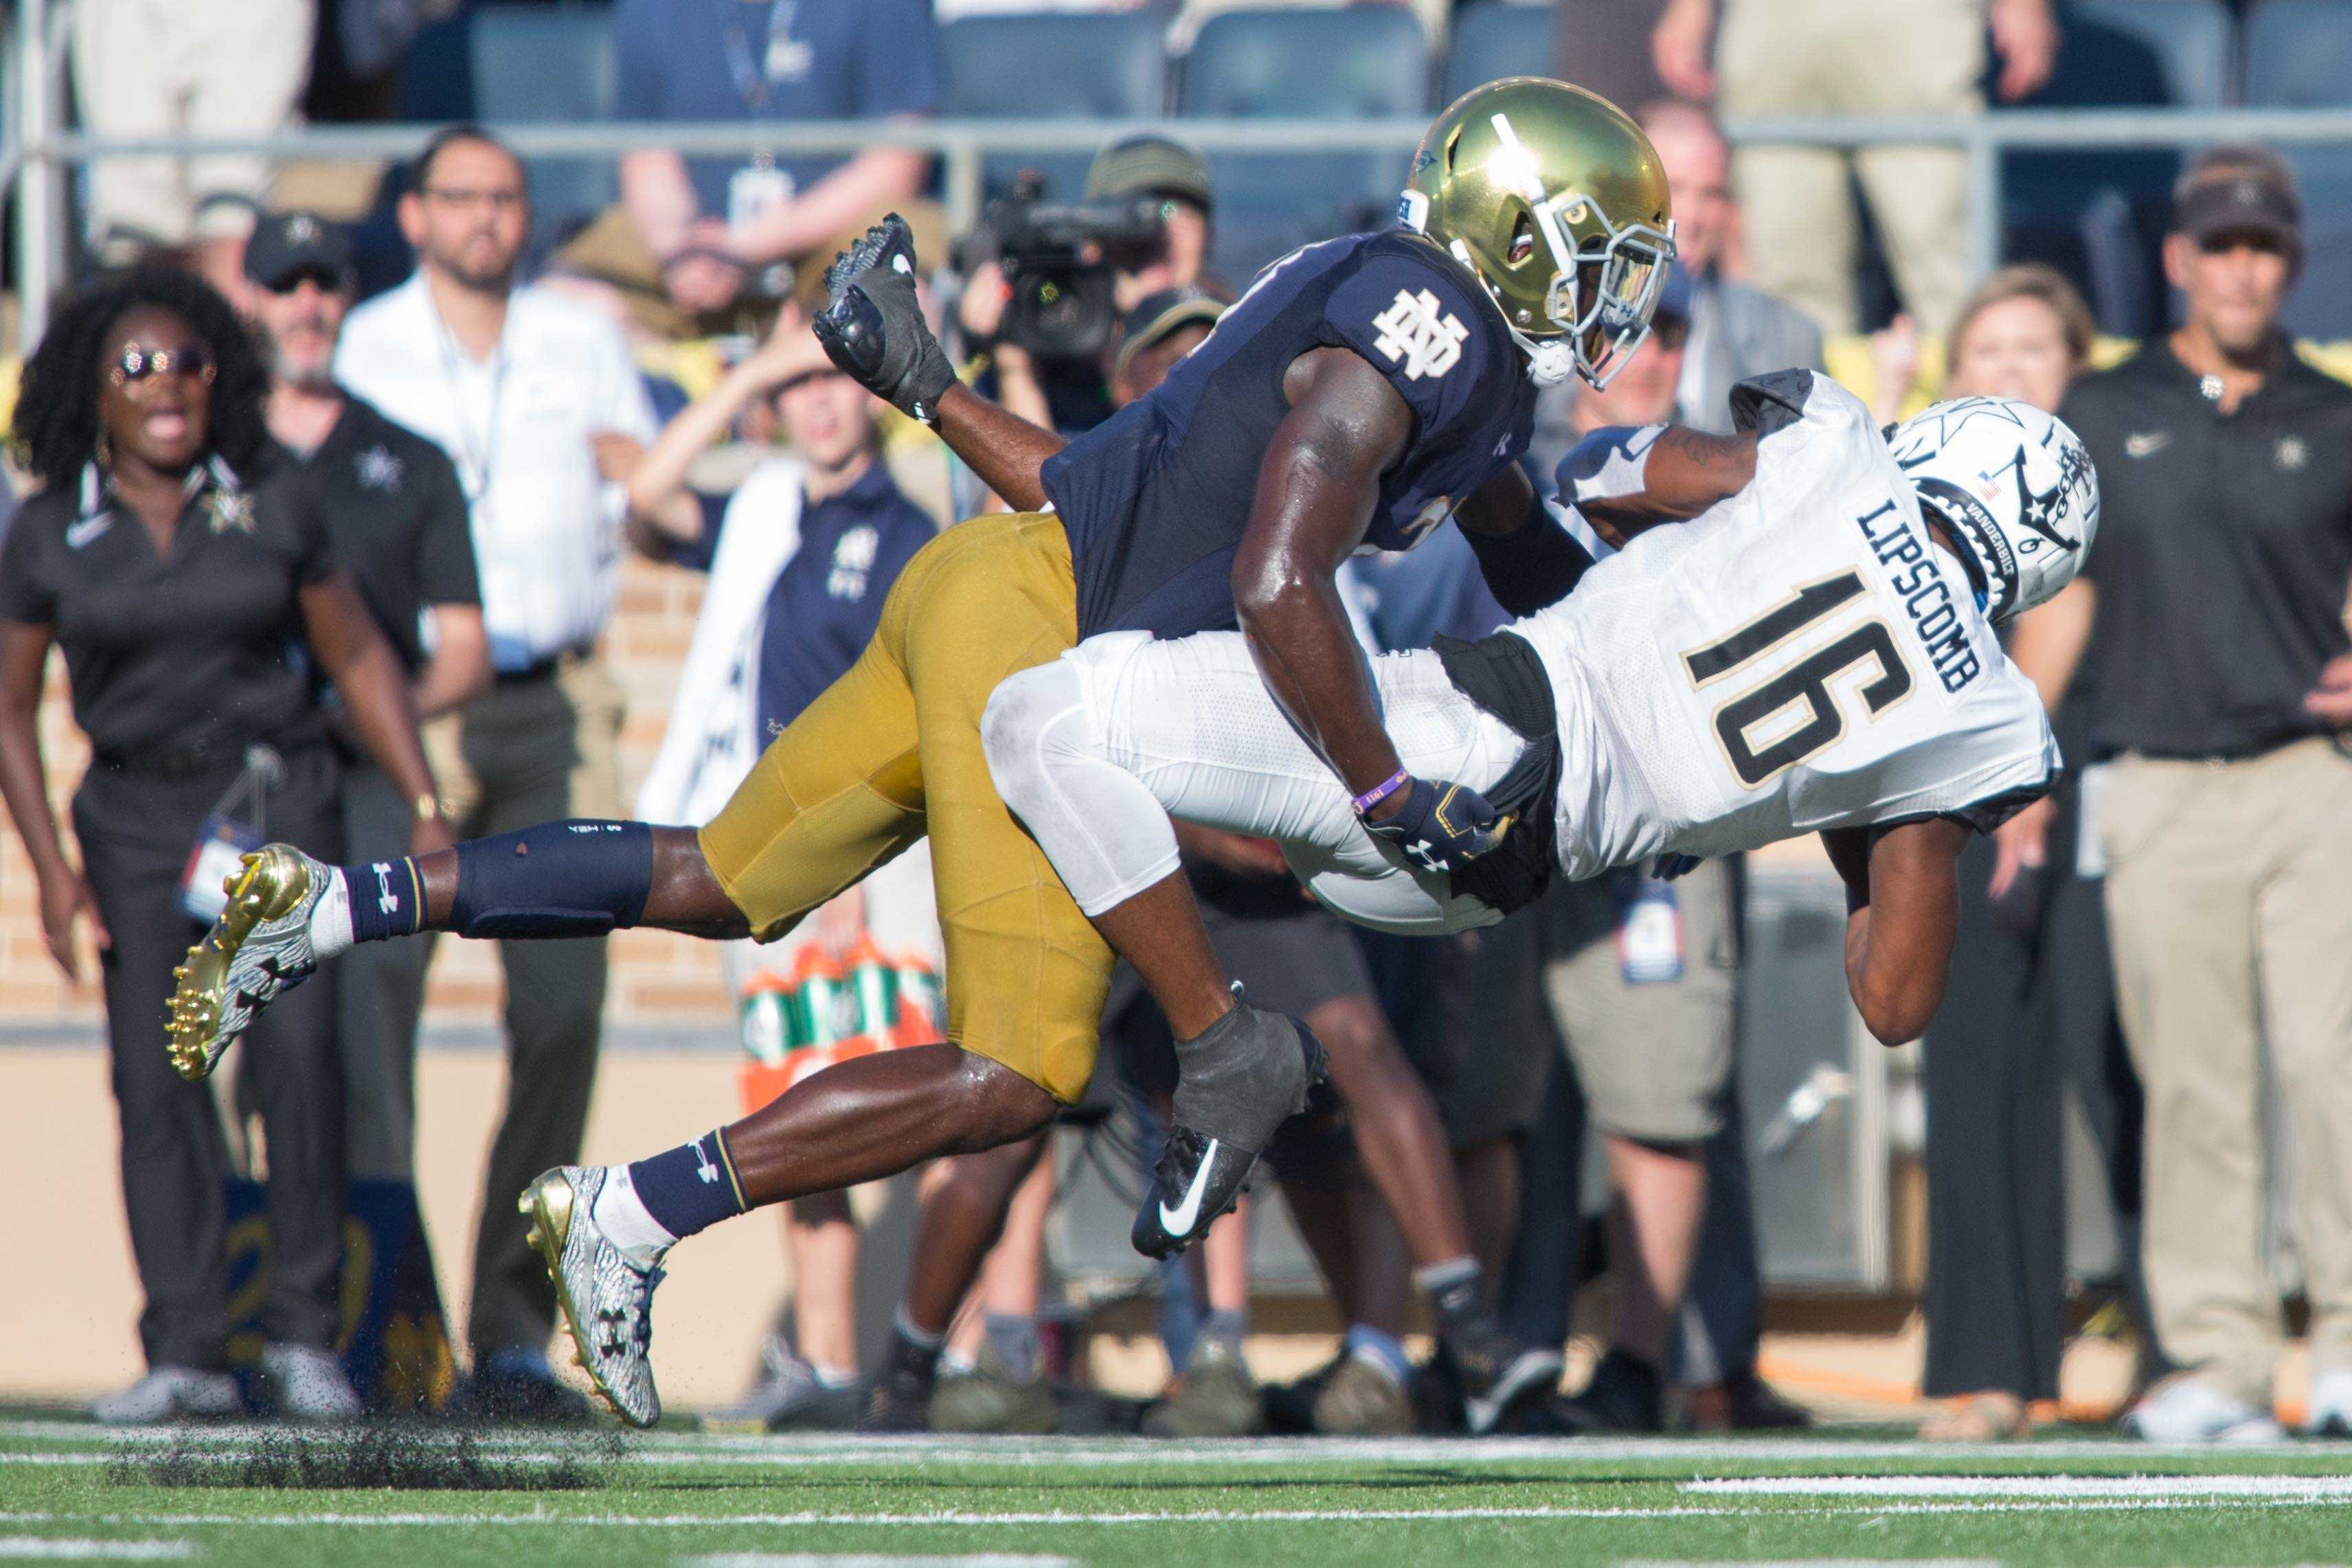 The Vanderbilt Football team plays at Notre Dame on Saturday, September 15, 2018. The Commodores lost 17-22. (Photo by Claire Barnett)